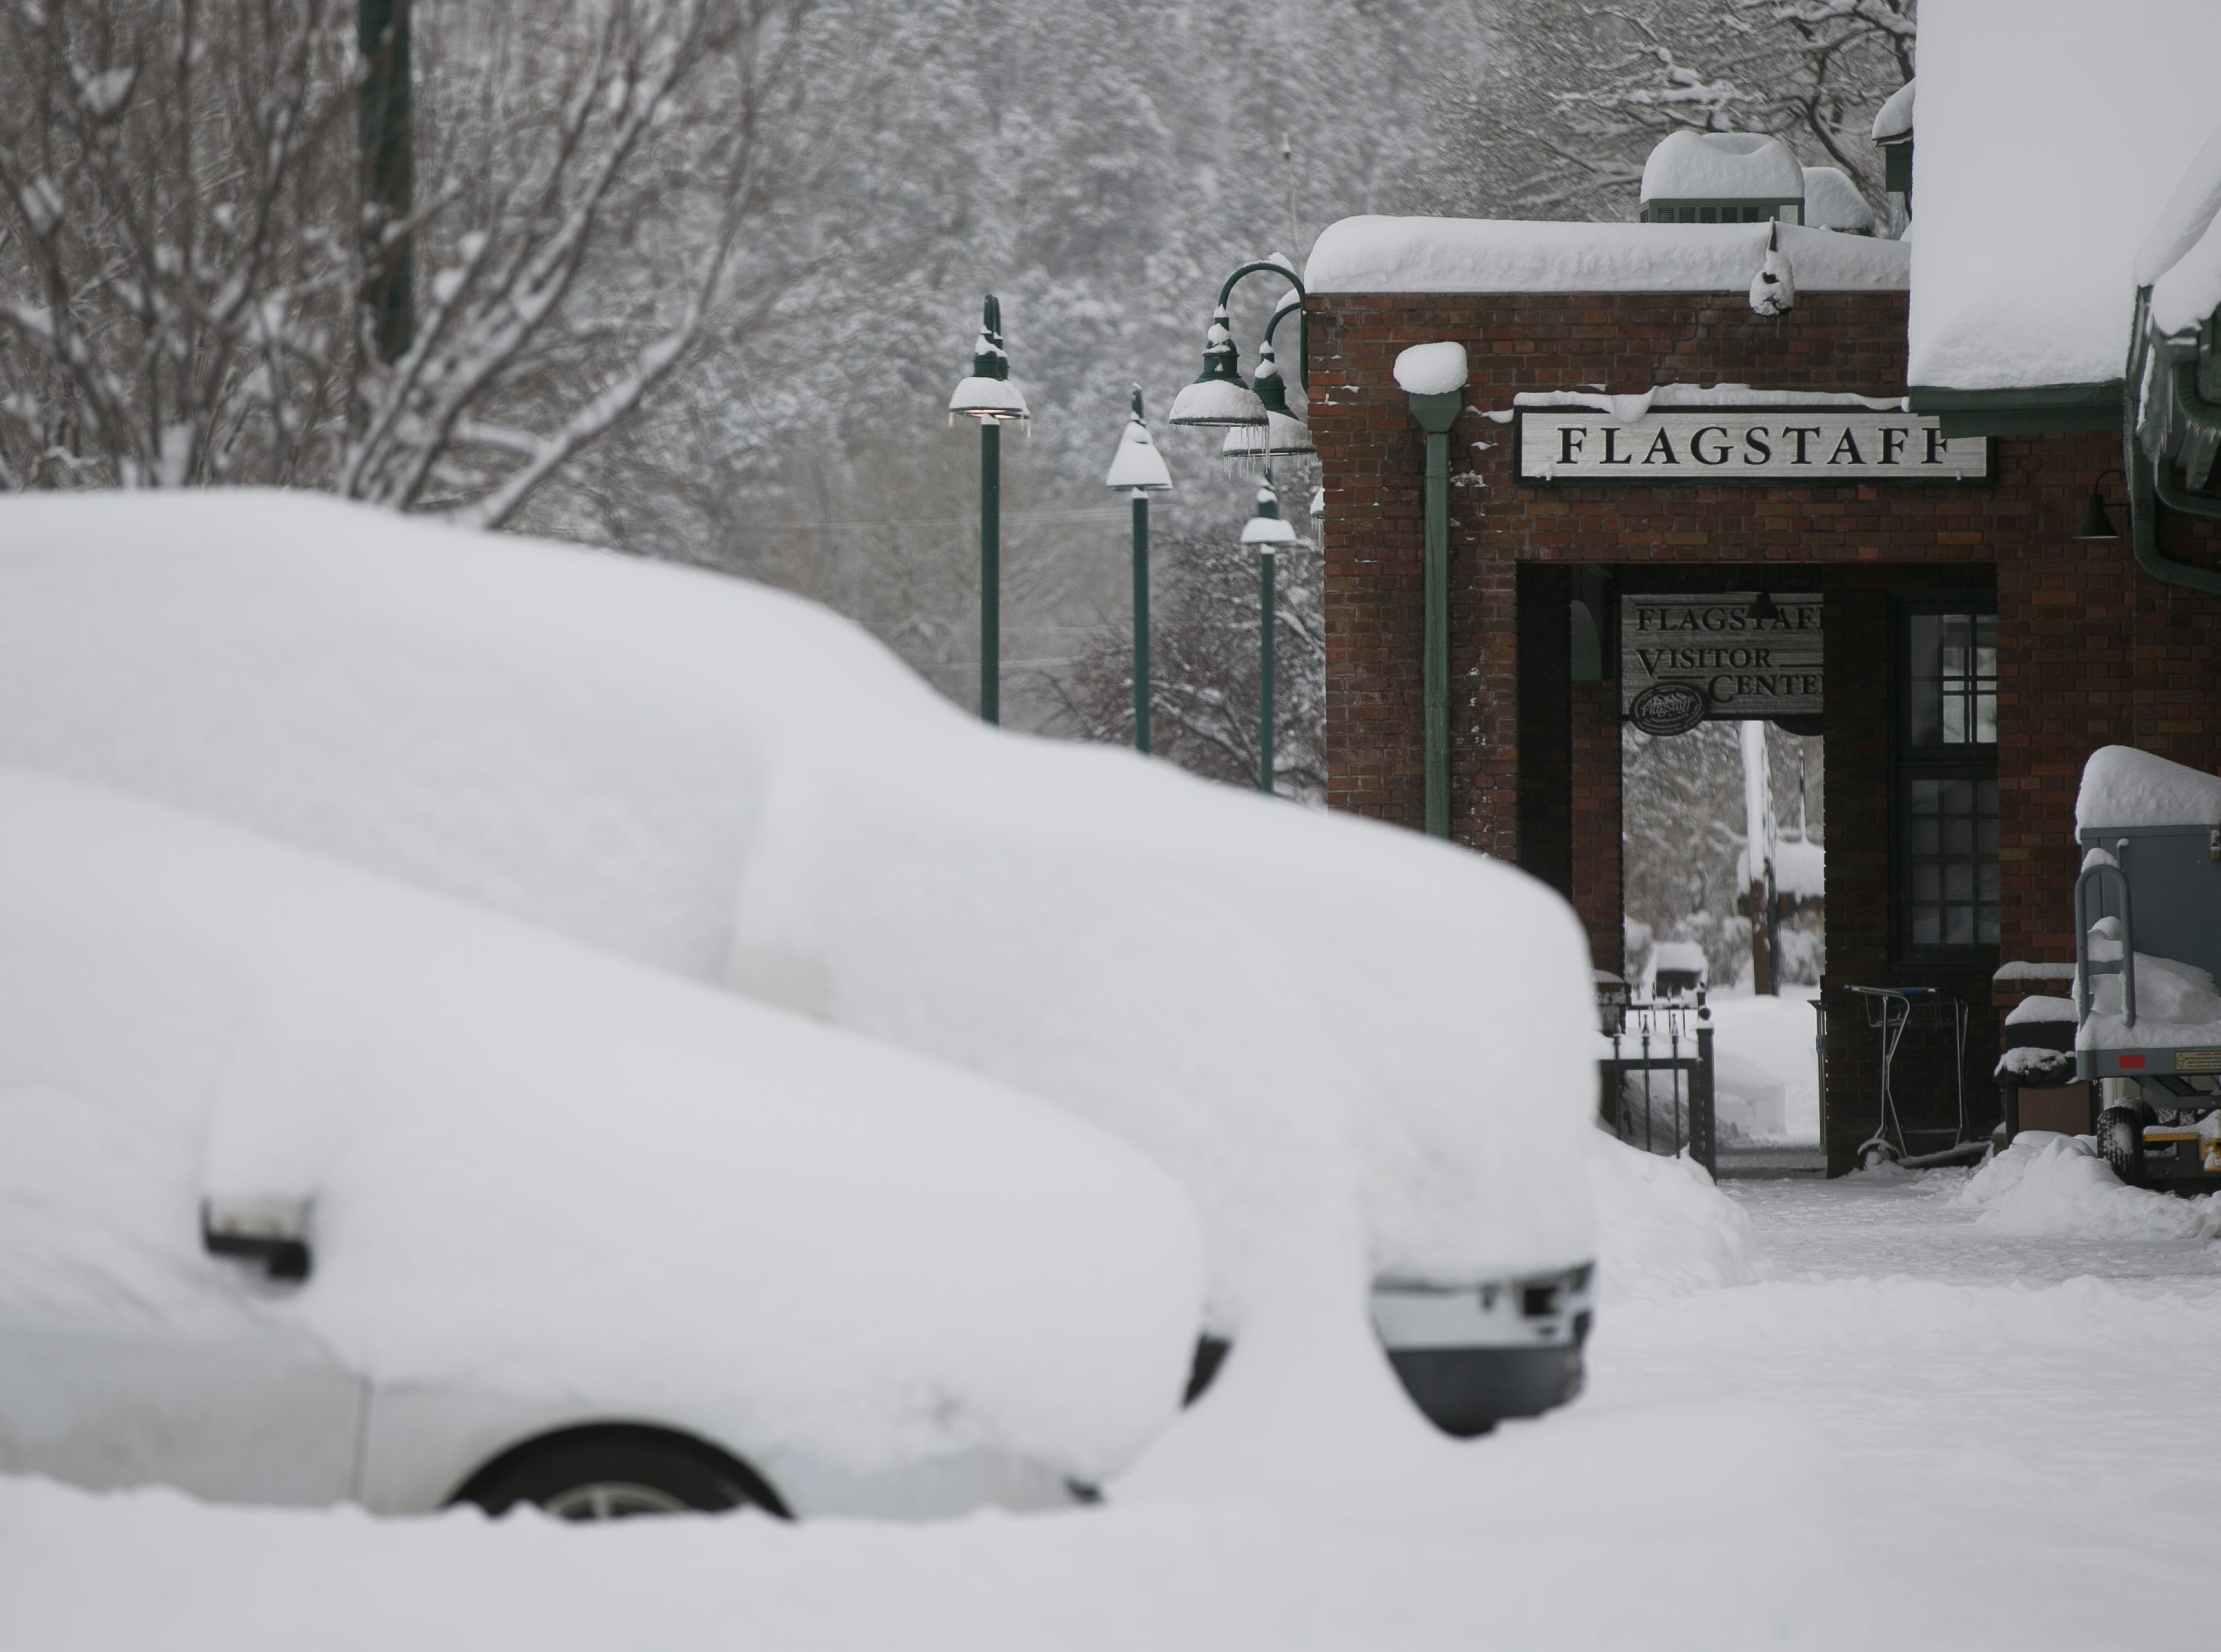 Snow blankets cars in front of the Flagstaff visitors center the morning after a snow storm in Flagstaff on Feb. 22, 2019. The day before, a snow storm set the record for the most amount of snowfall in a day in Flagstaff